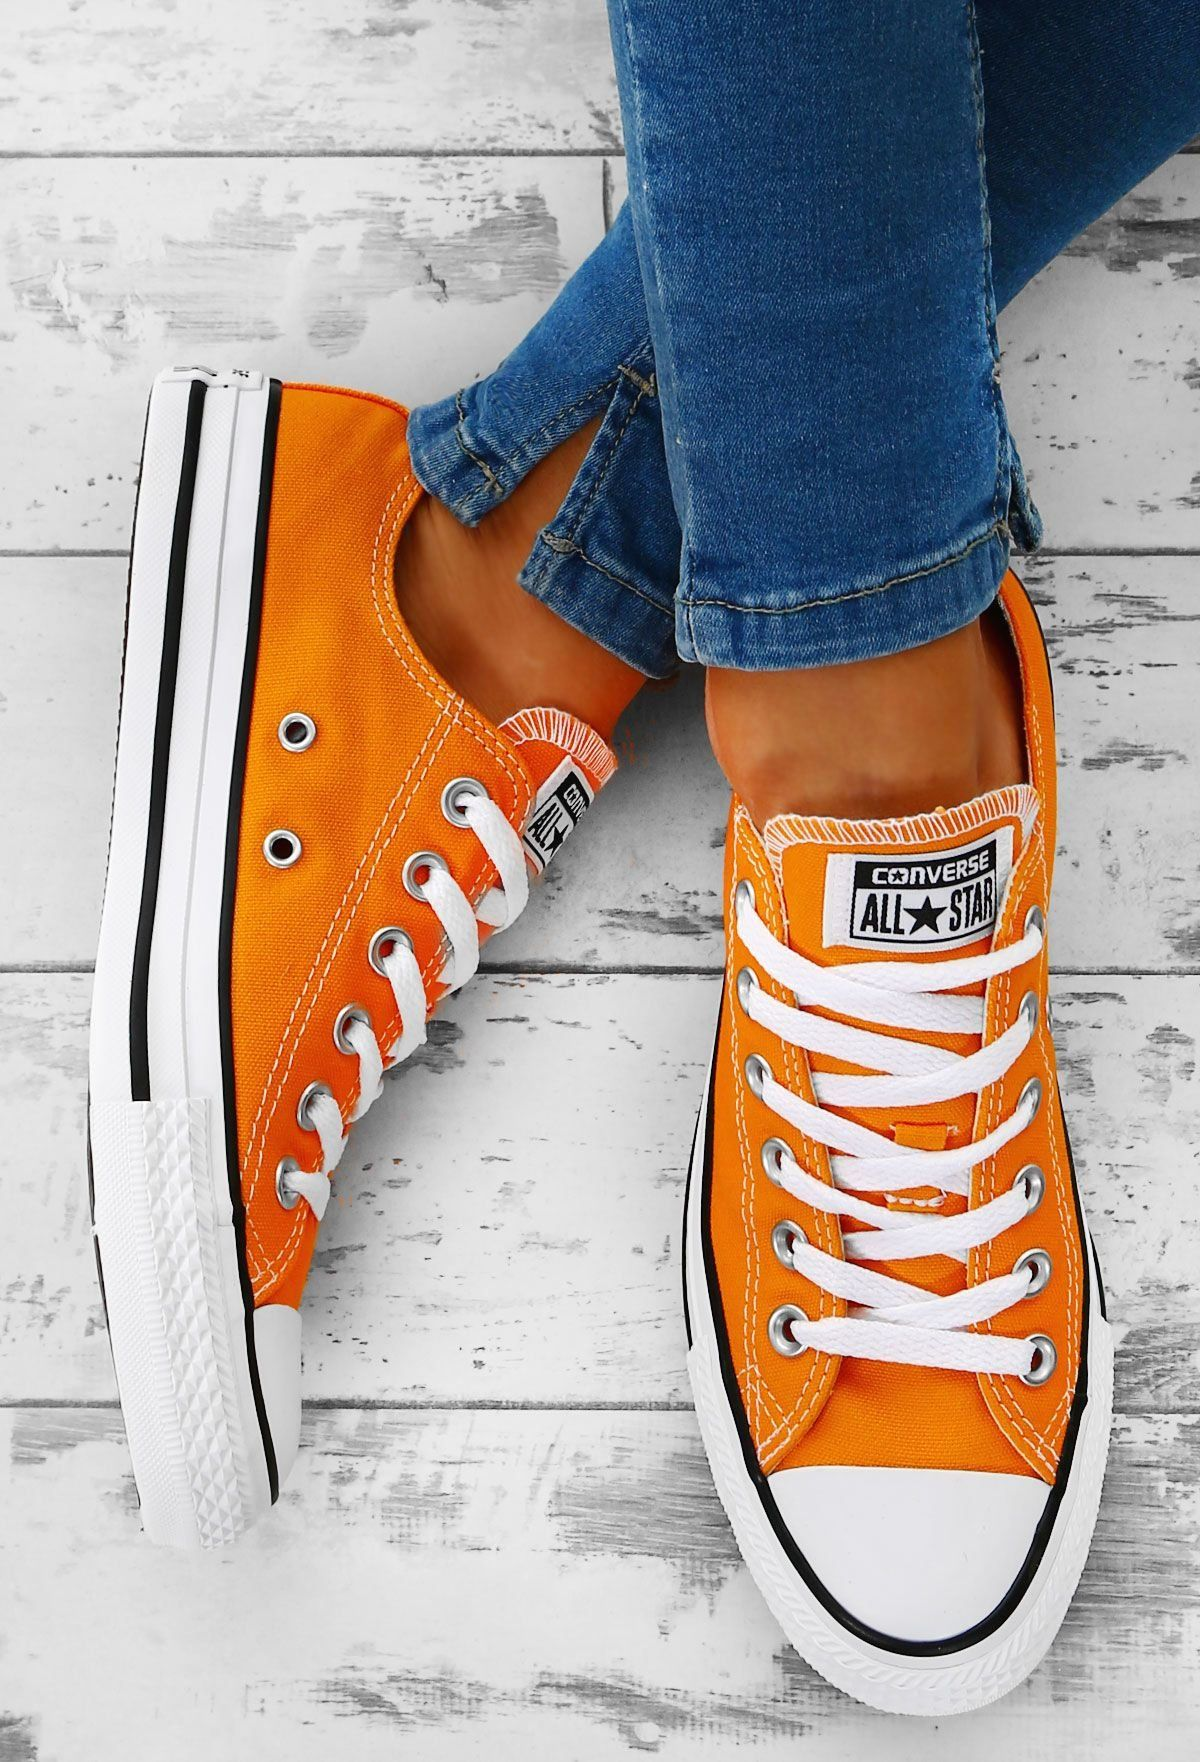 izquierda quemado superficie  Converse Chuck Taylor All Star Orange Trainers | 1000 | Orange converse,  Tenis all star feminino, Tenis feminino tumblr